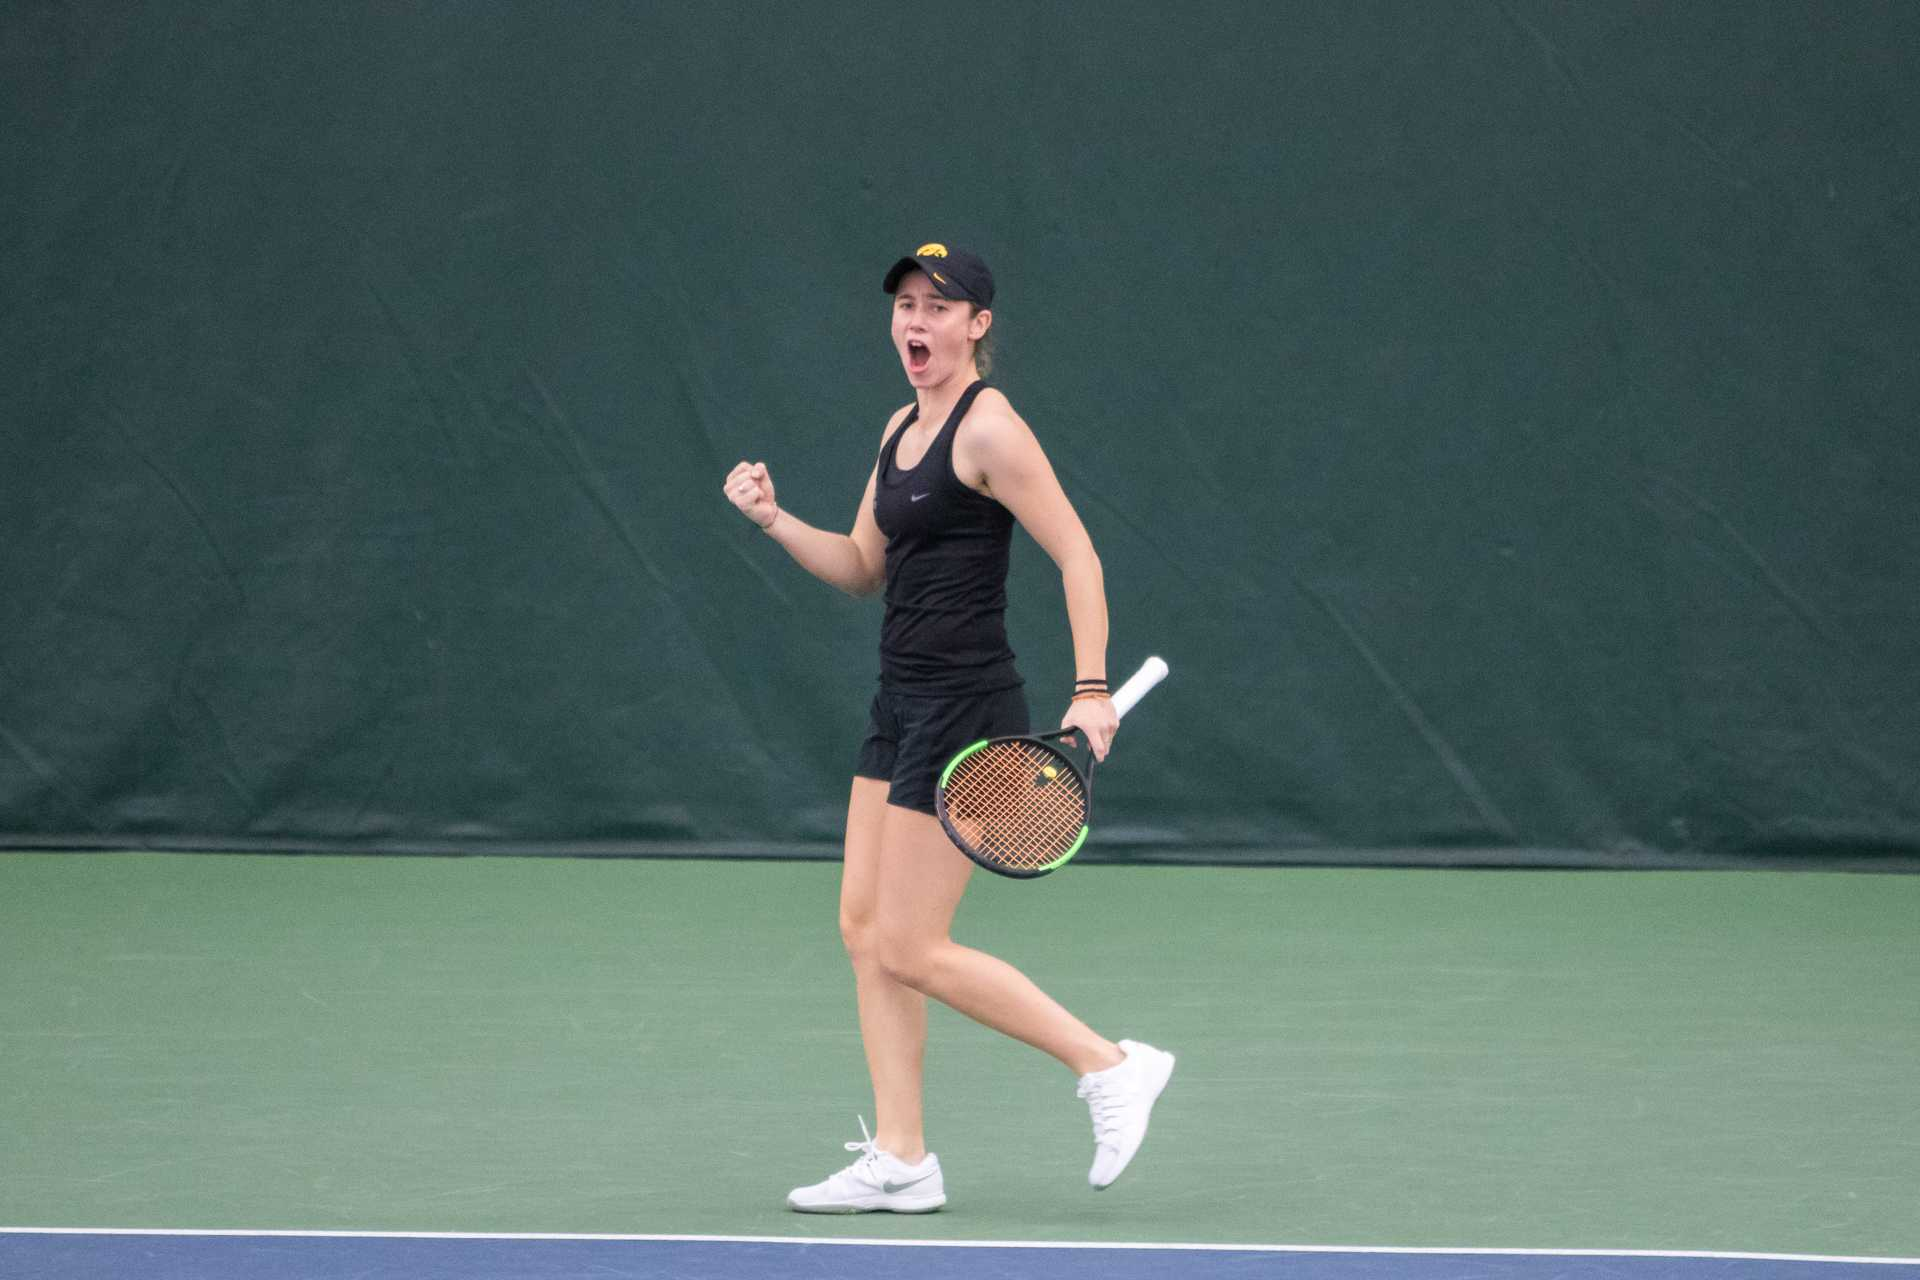 Iowa tennis player Elise van Heuvelen celebrates winning a match during a match against Marquette University on Sunday, Feb. 25, 2018 at the Hawkeye Tennis Complex.